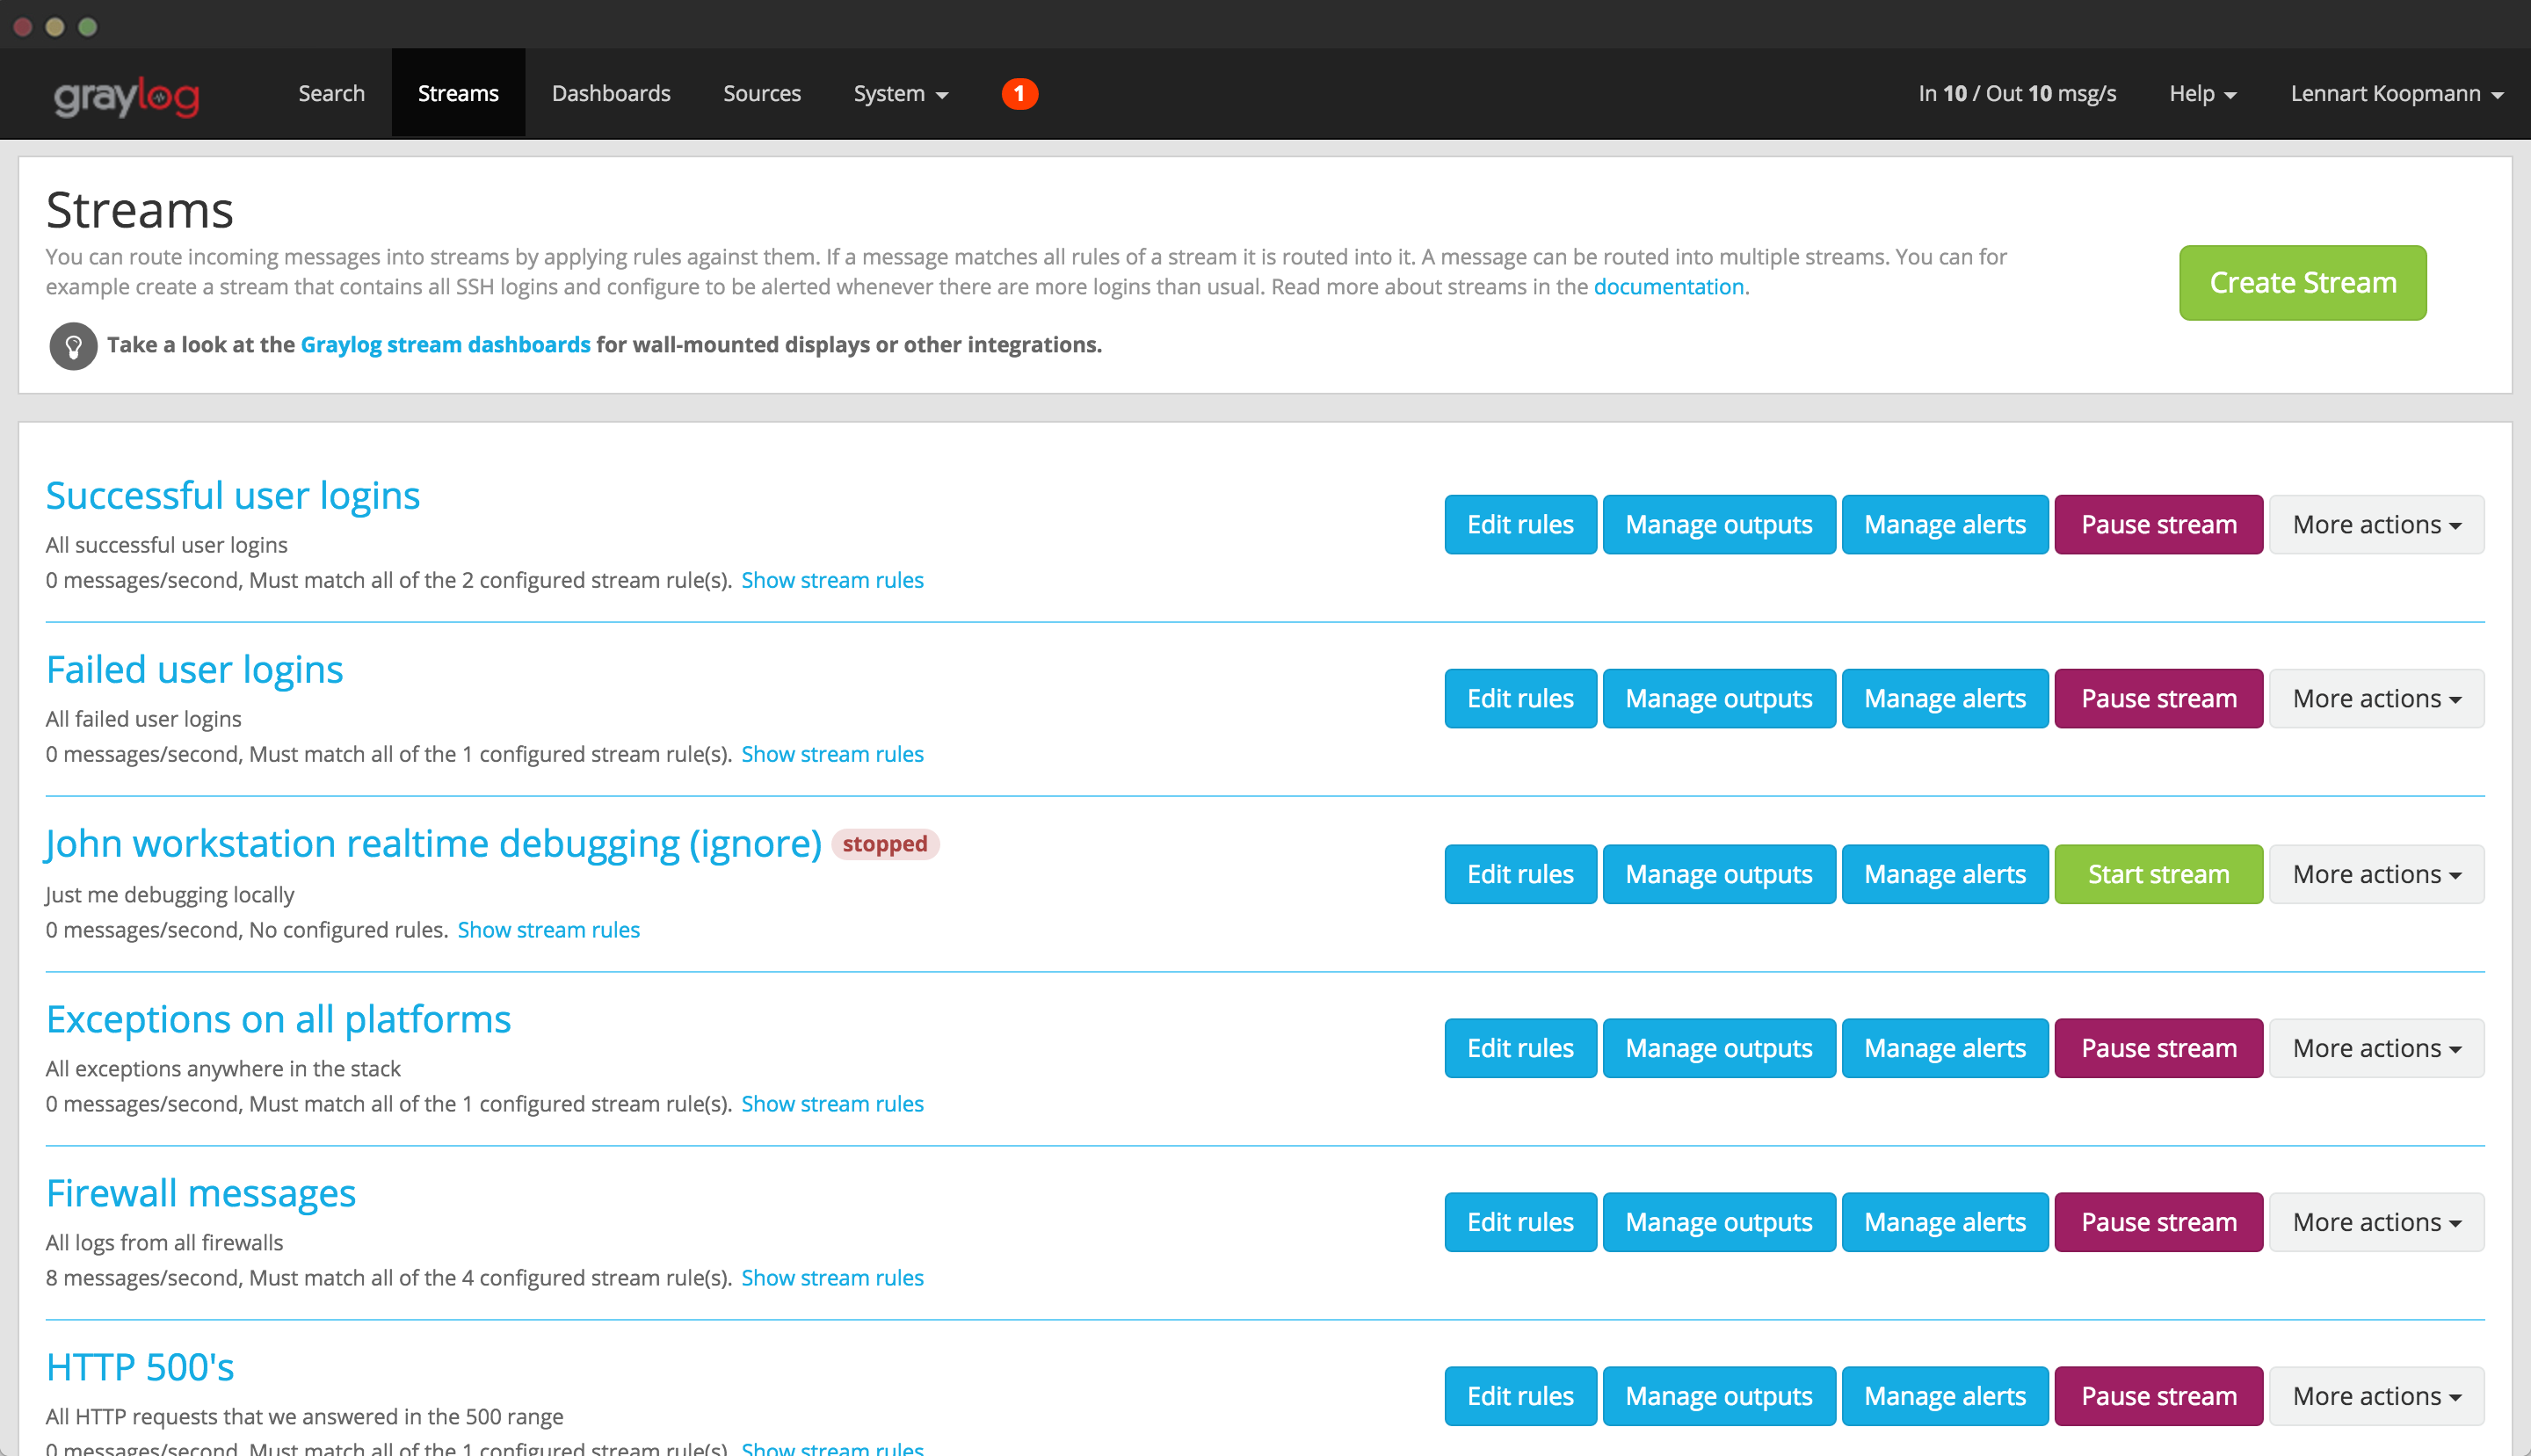 graylog_streams